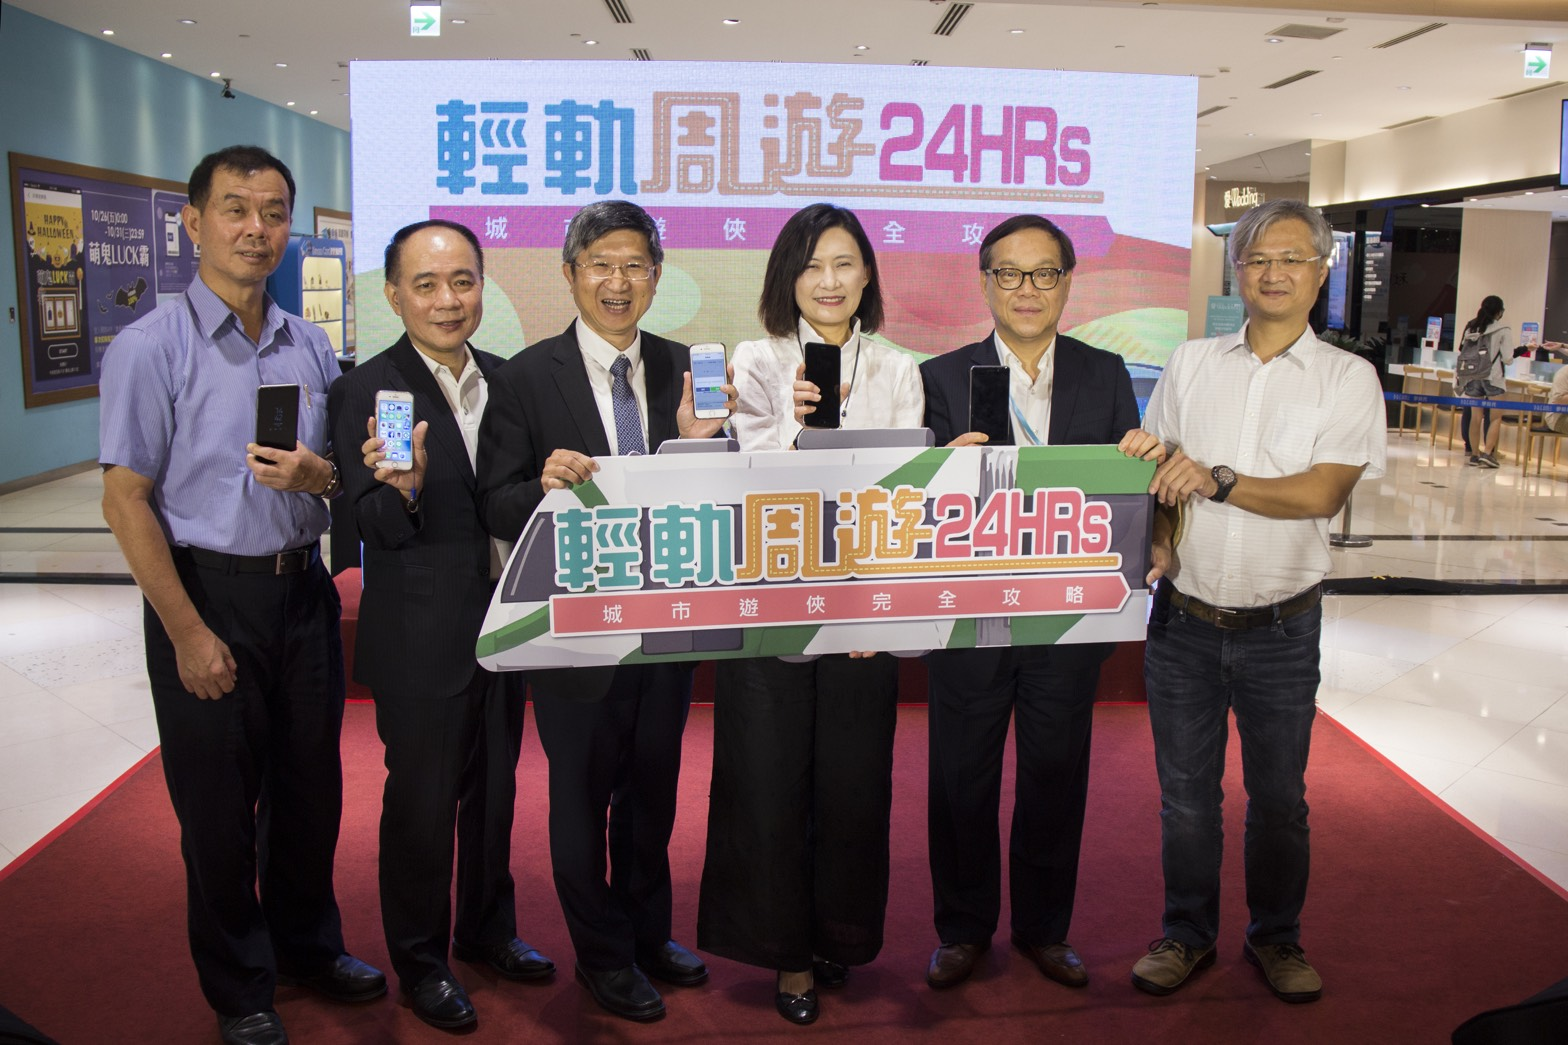 Explore Kaohsiung with an e-pass